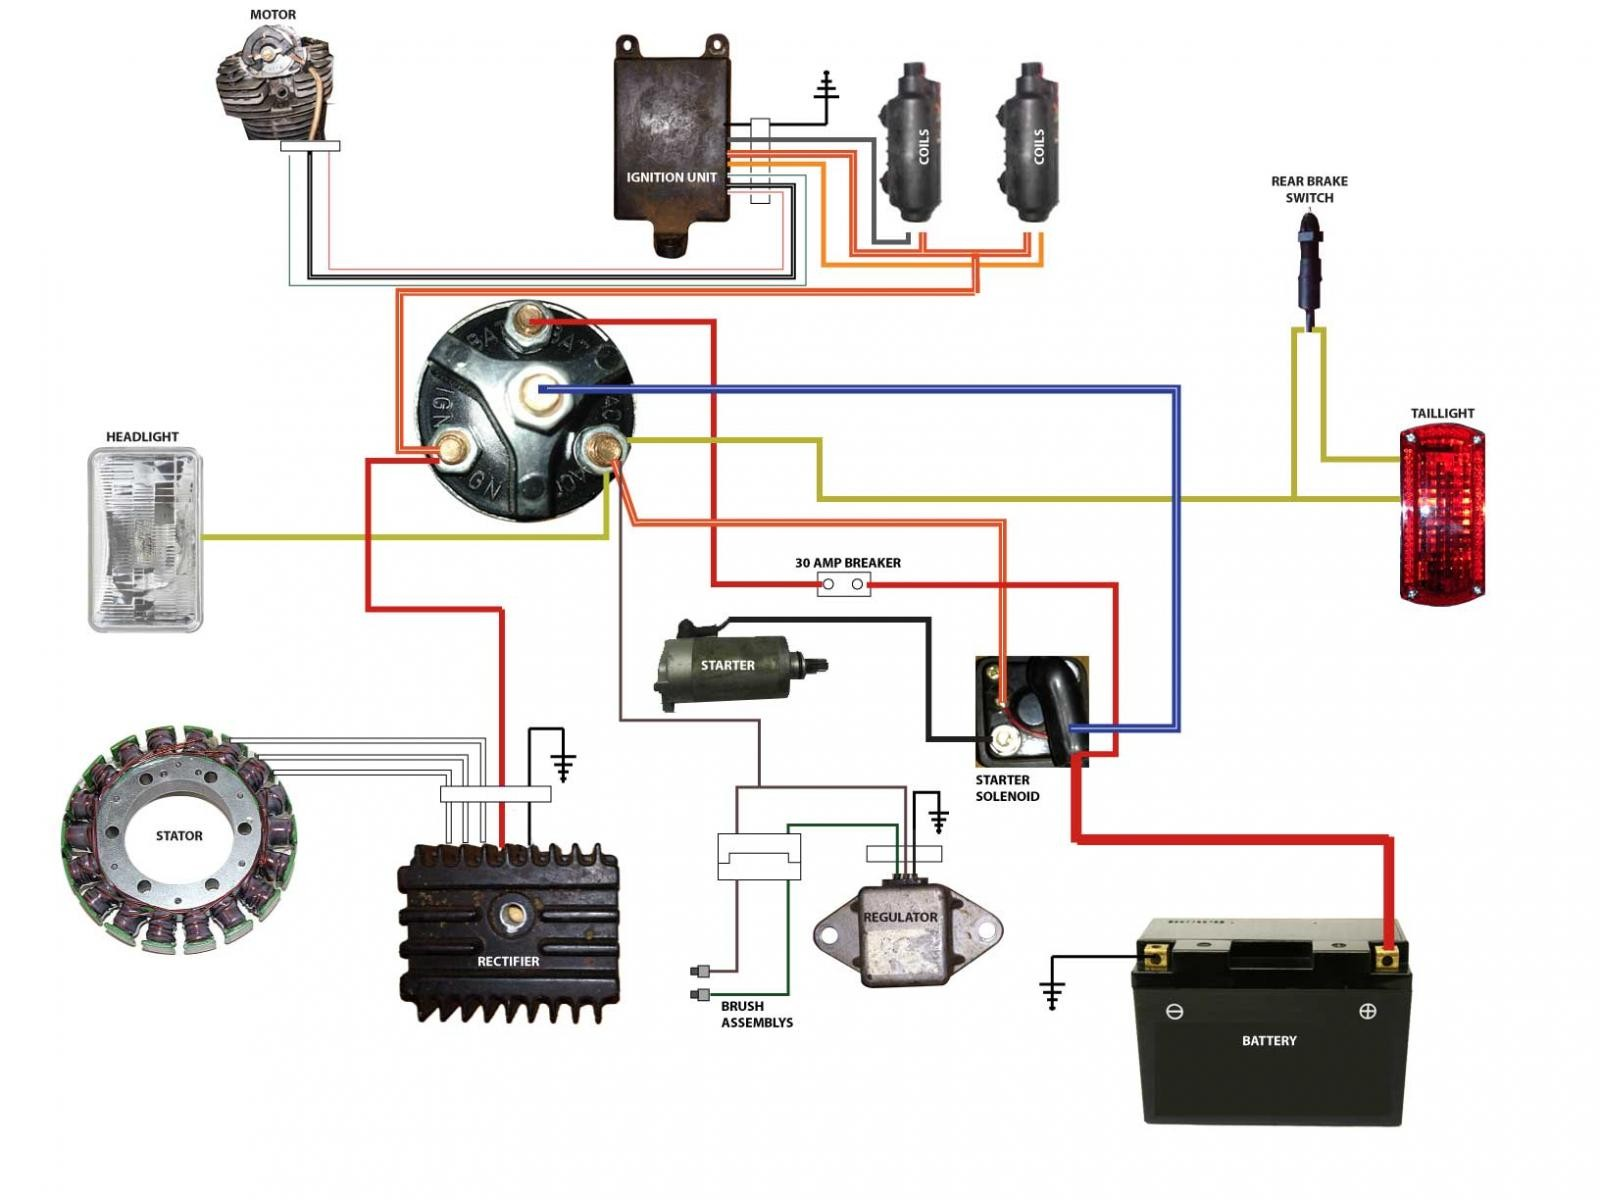 Simplified Wiring Diagram Honda Cb750 | Diagram